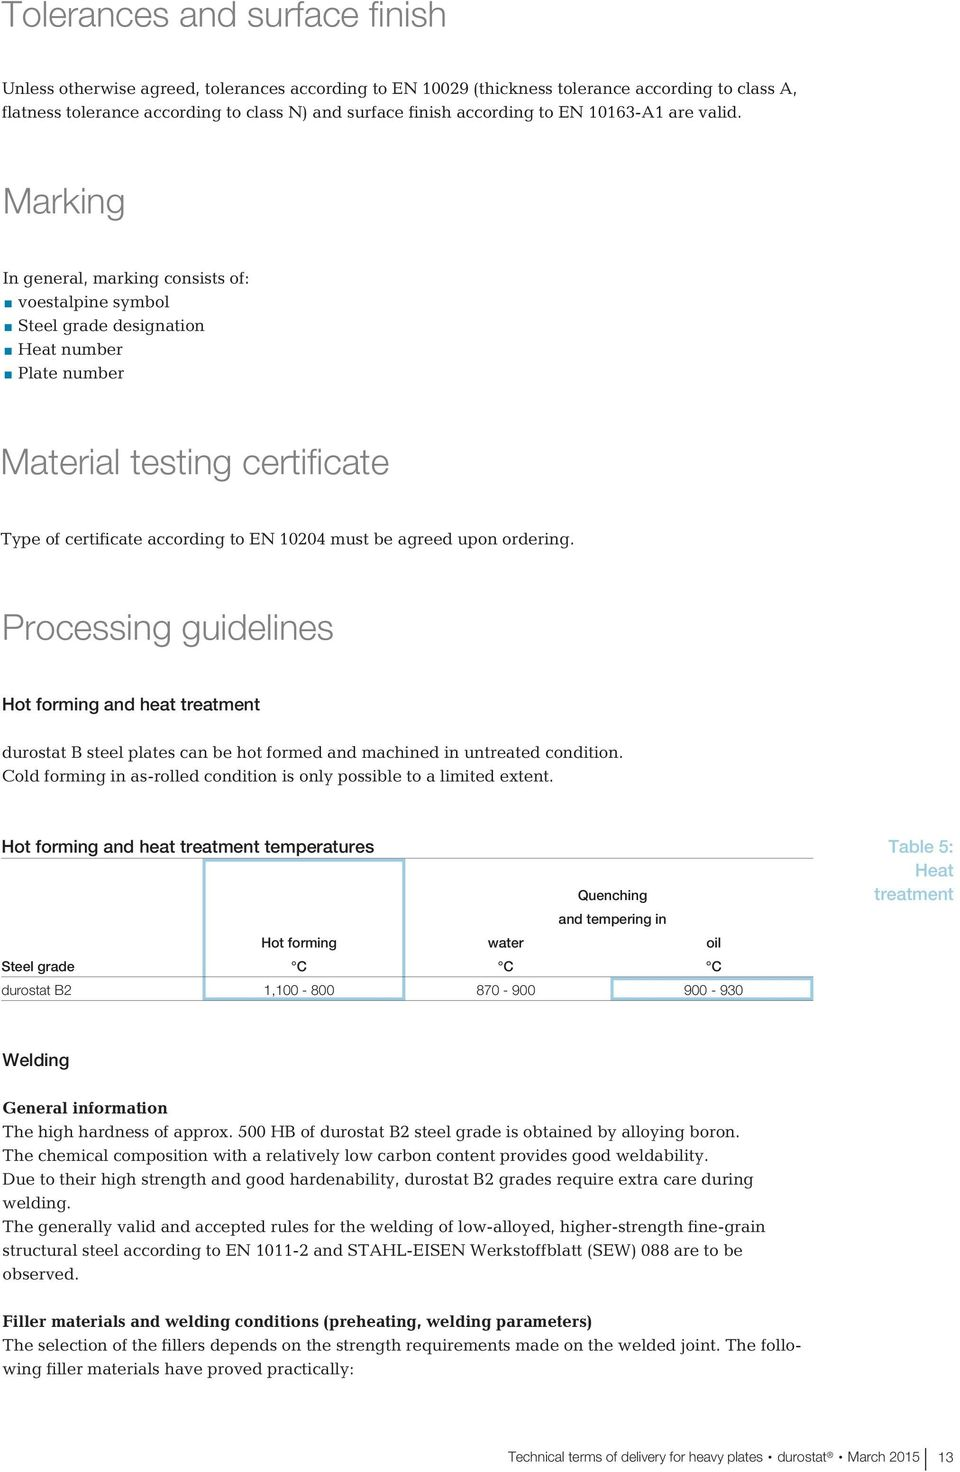 Marking In general, marking consists of: voestalpine symbol Steel grade designation Heat number Plate number Material testing certificate Type of certificate according to EN 10204 must be agreed upon